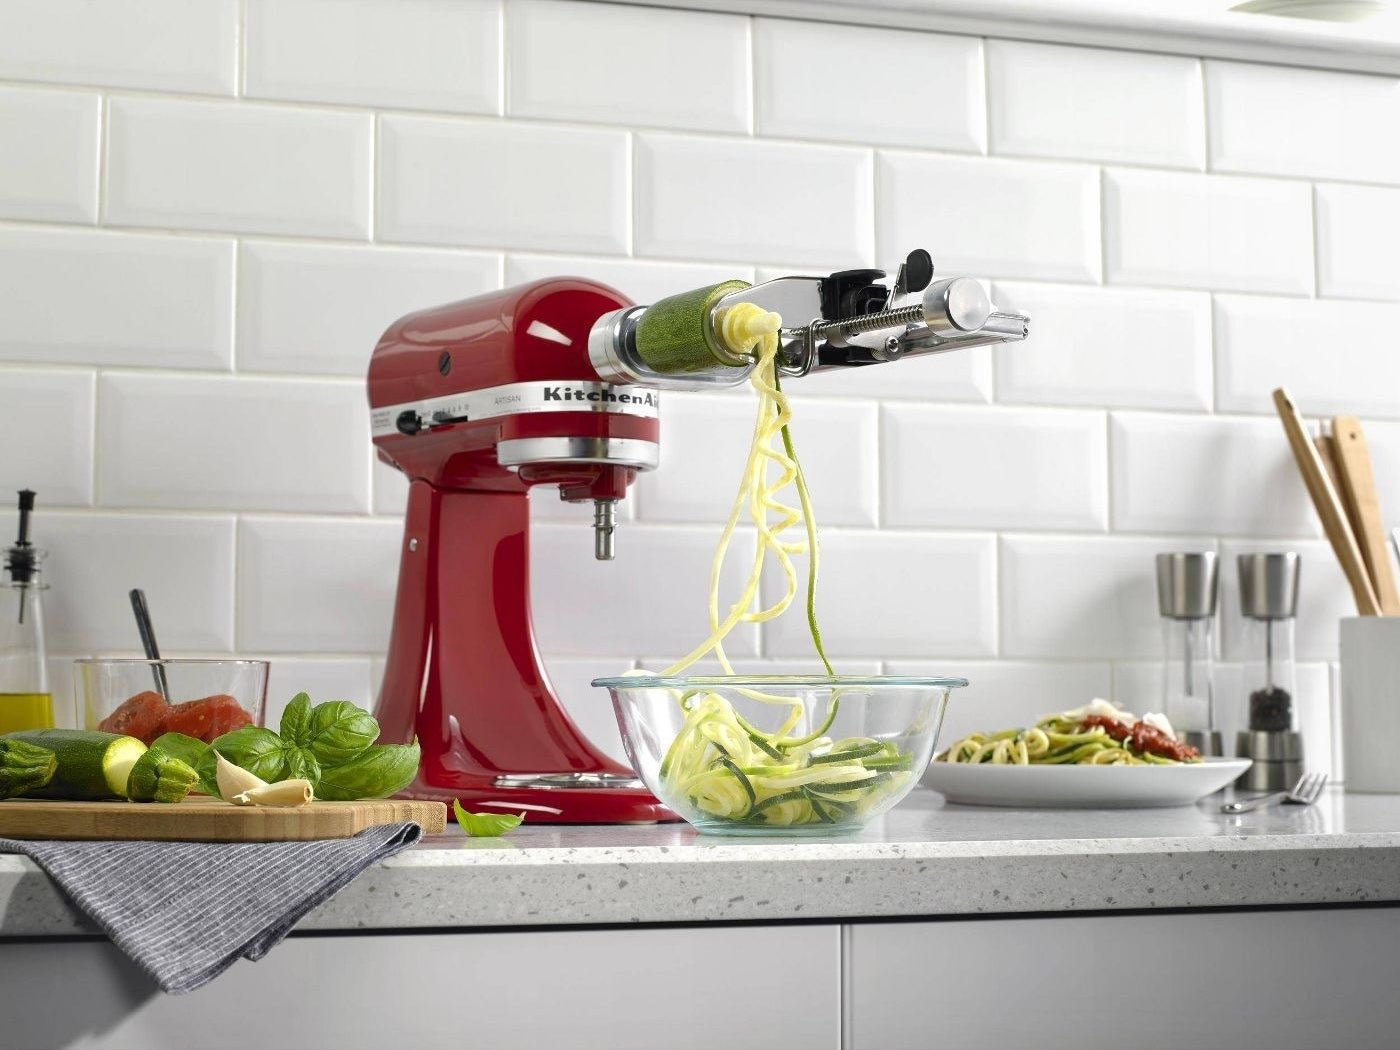 a red kitchen aid mixer with the stainless steel attachment making zucchini noodles